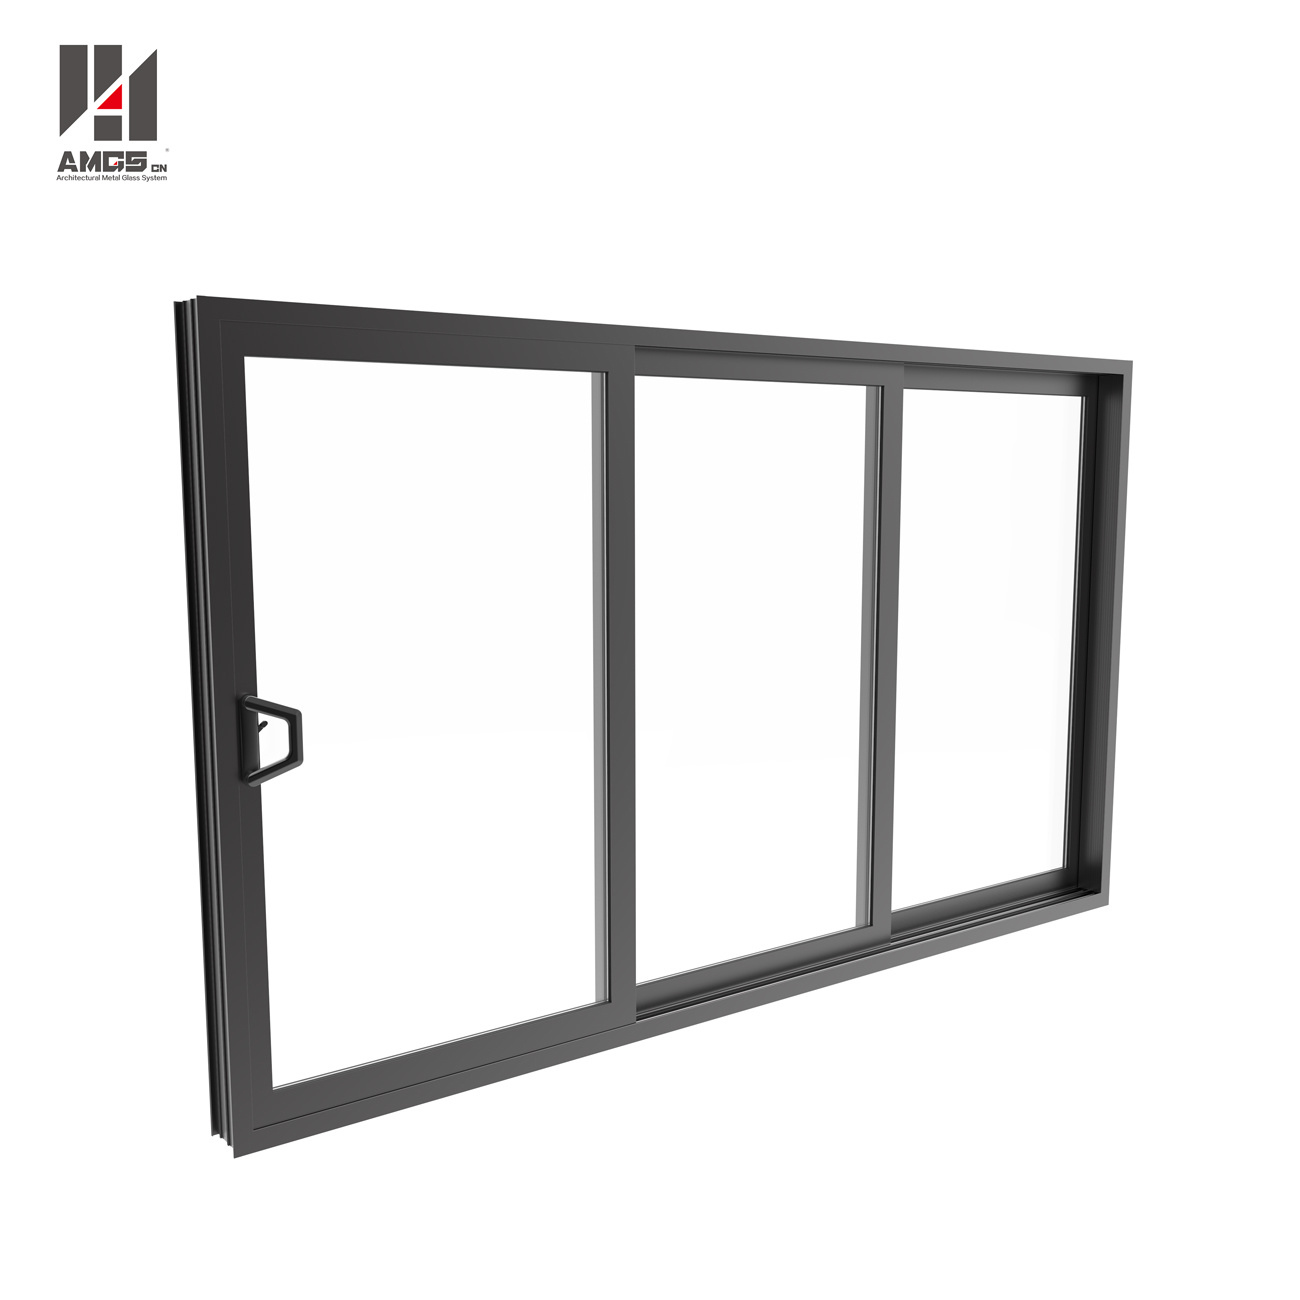 Modern Latest Design Doors Windows Price of Aluminum Sliding Window with Mosquito Net